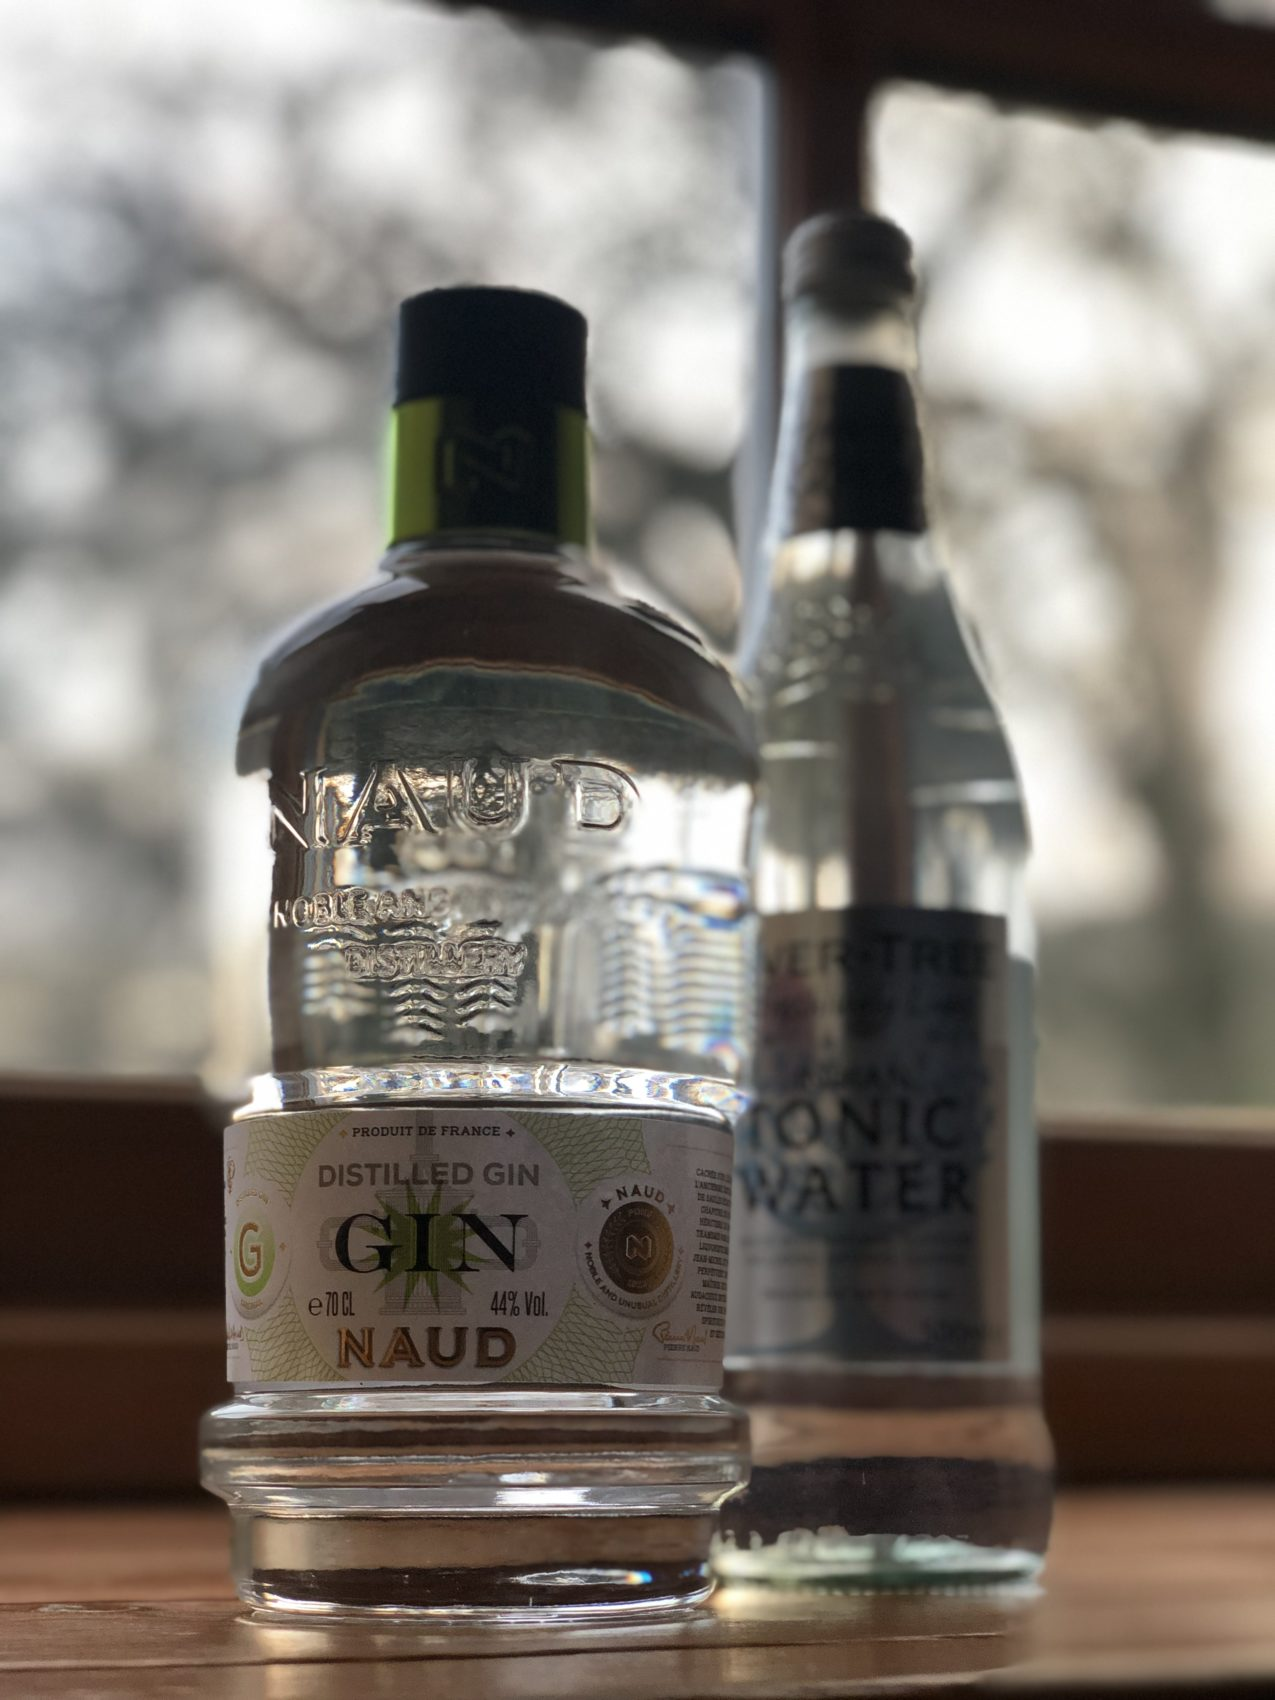 Naud Gin, Fever Tree Tonic, Smooth, Tangy, Flavour, Botanicals